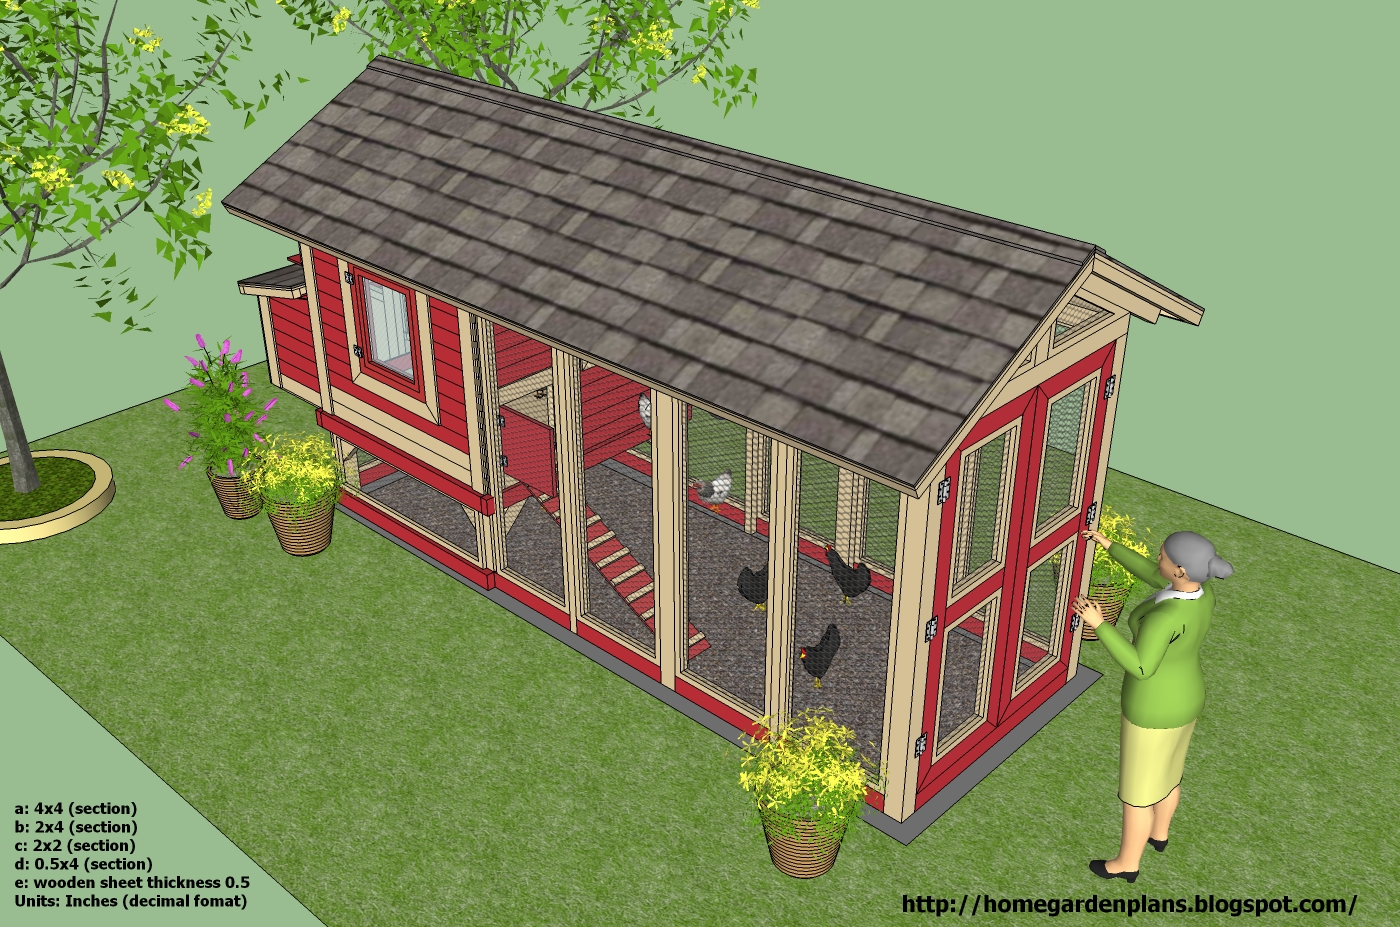 Home garden plans m102 chicken coop plans how to for Plans chicken coop